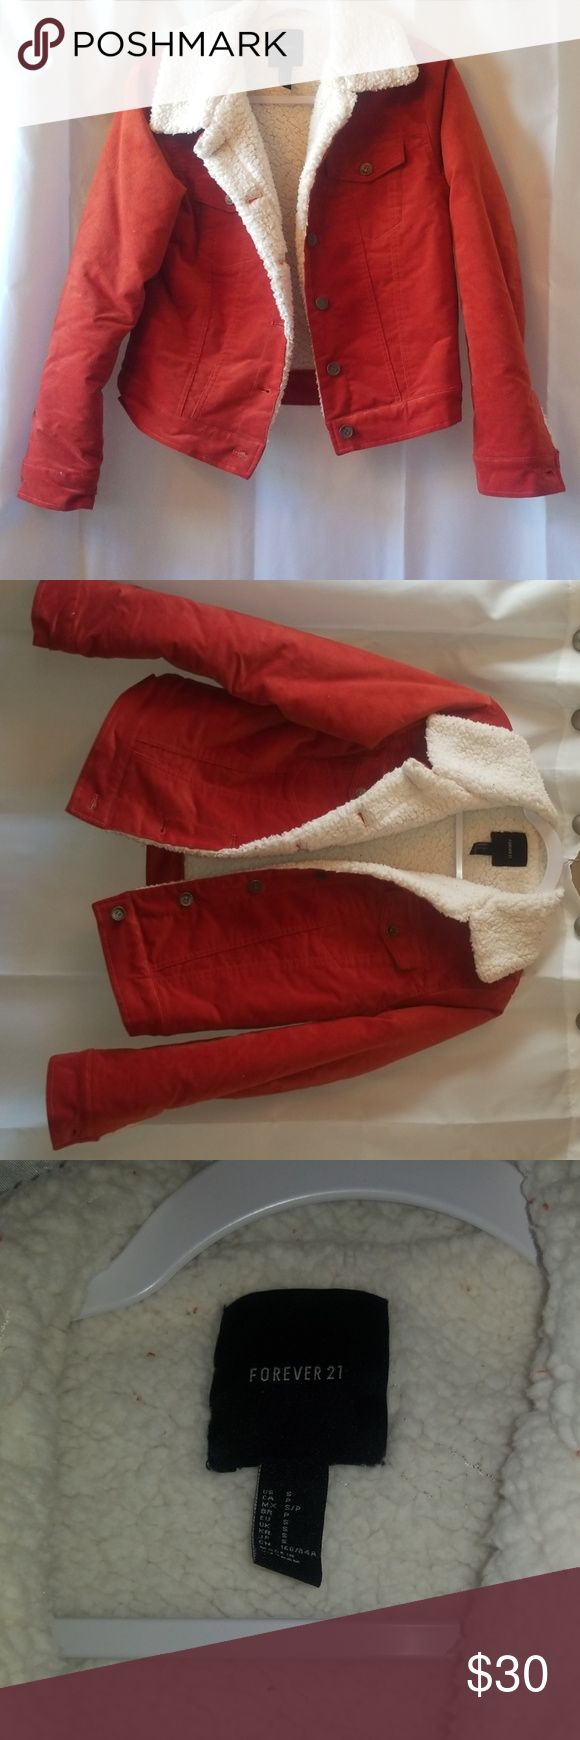 Forever 21 burnt orangy red puffer jacket | Red puffer ...